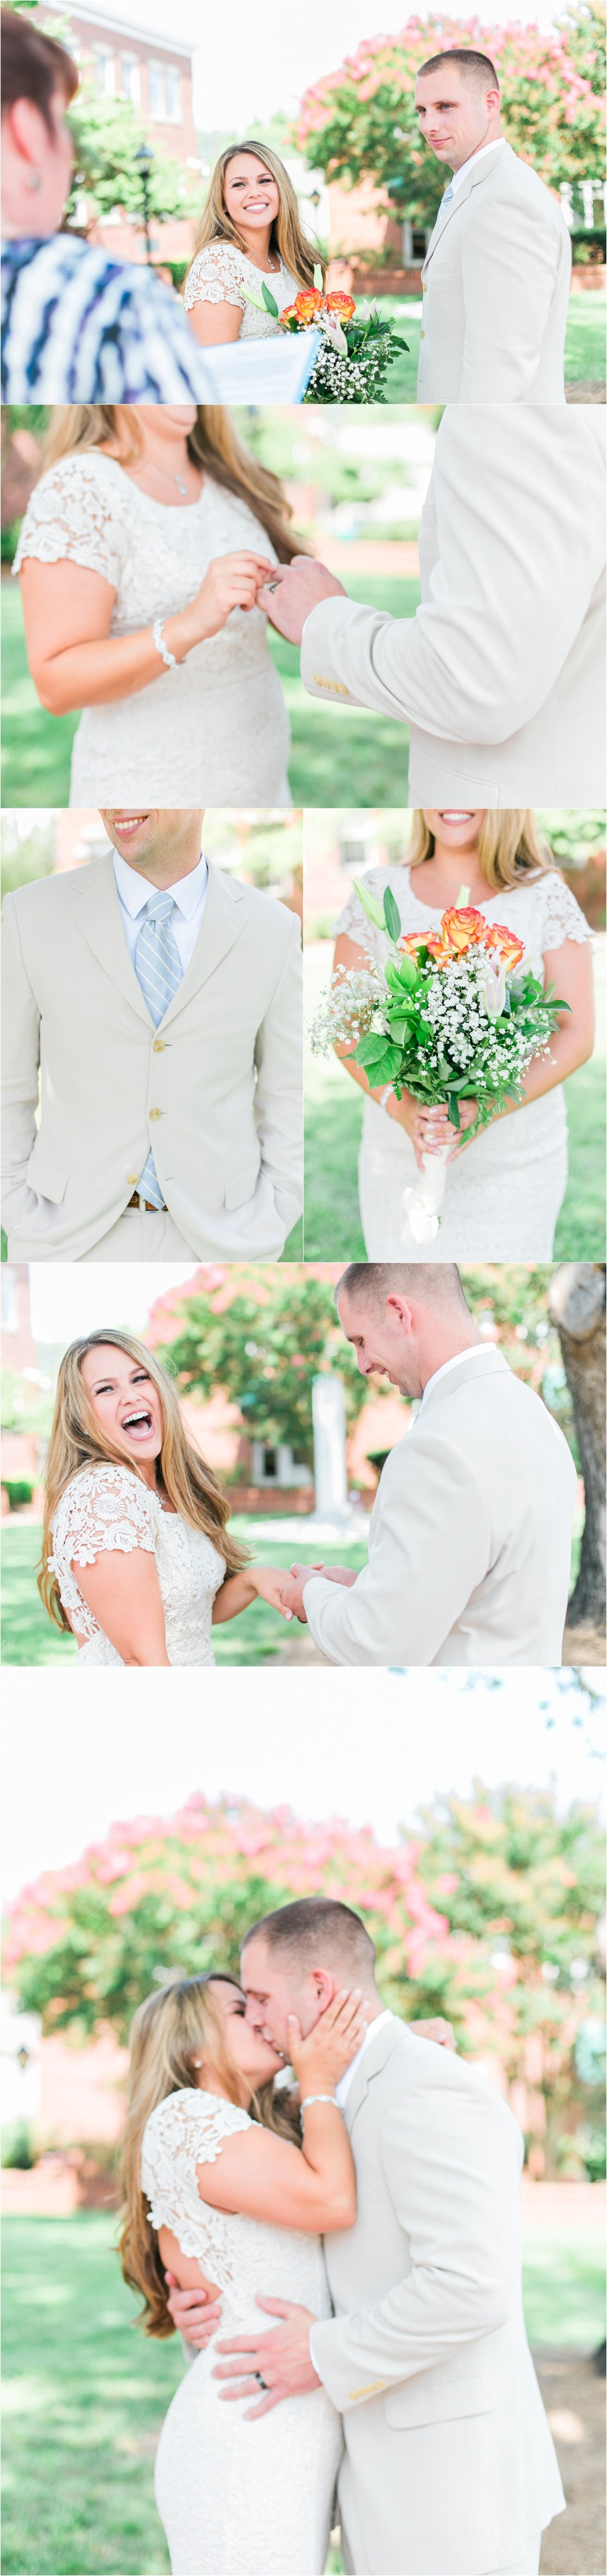 Costola Photography | Calvert County Wedding